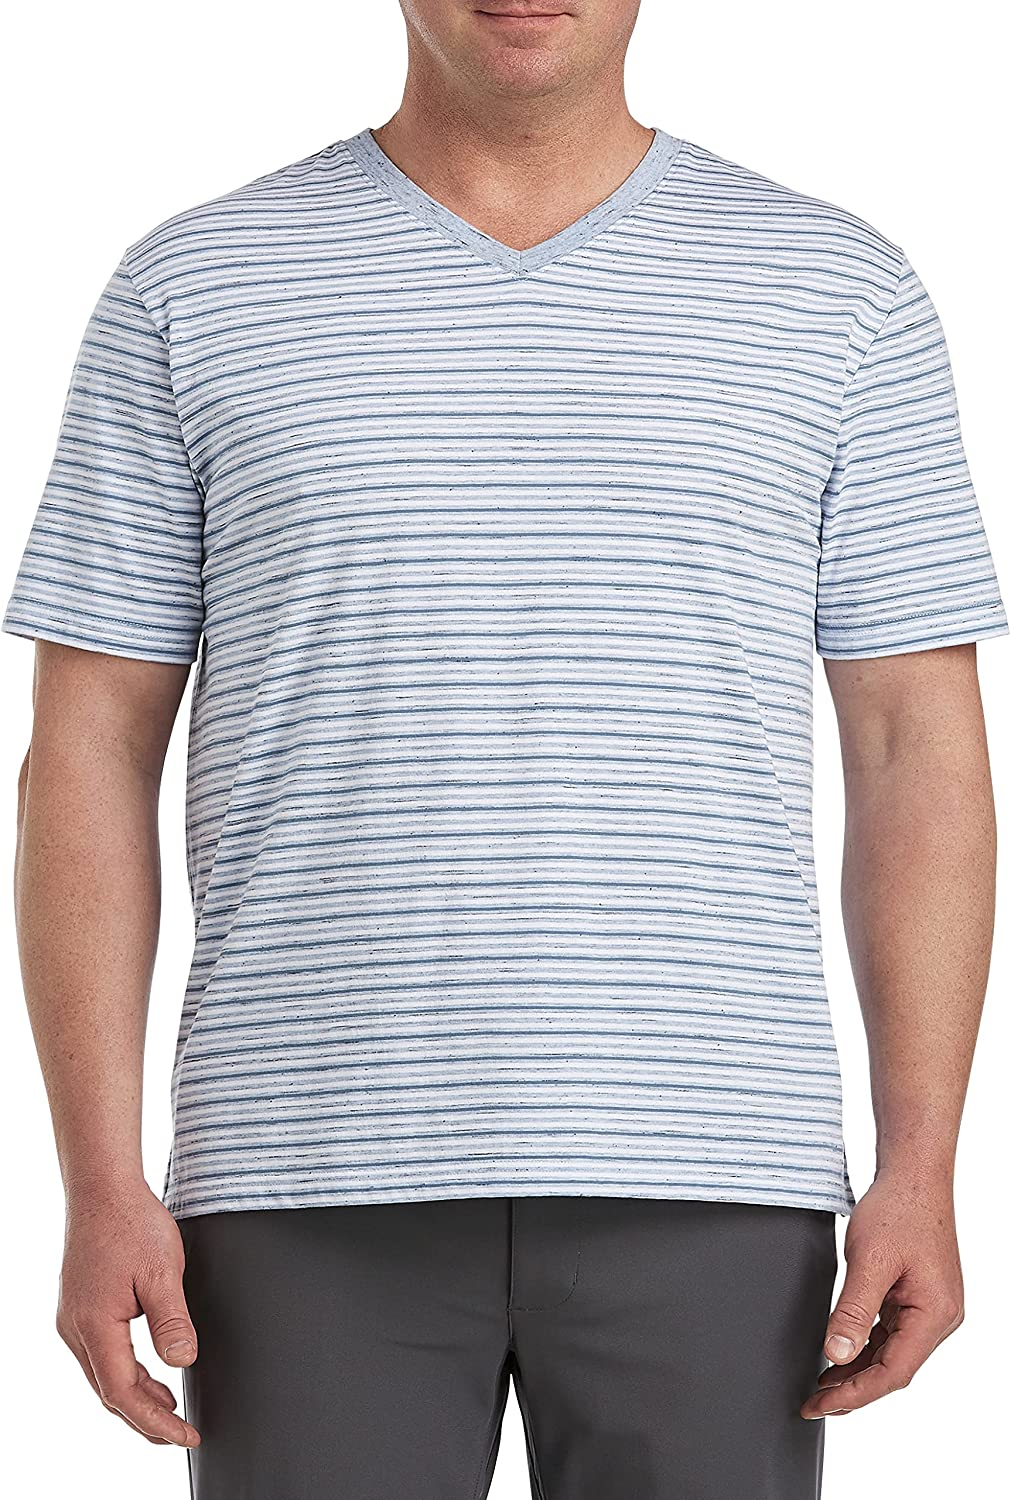 Harbor Bay by DXL Big and Tall Stripe V-Neck Tee, Blue White Multi